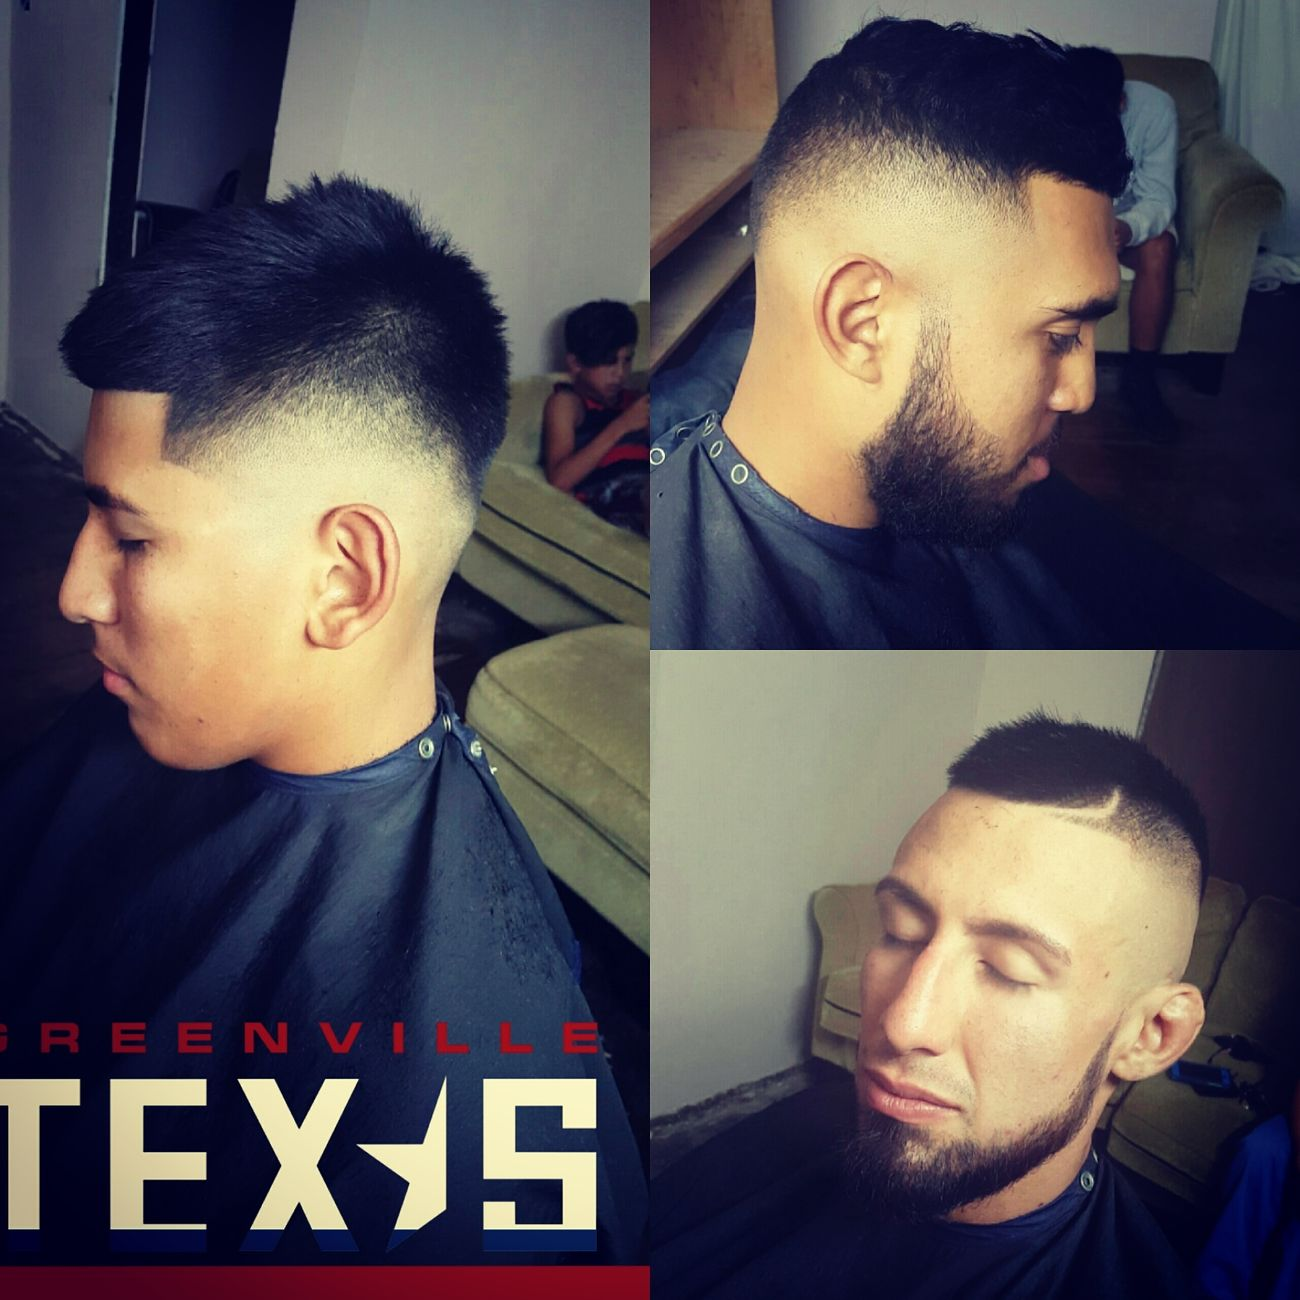 Barberlife Greenville, Tx TaperFade Mohawk Texas Barbershop Fresh Fade Hairdesing 903Tx Dallas Blowout Wahlclippers GUCCI Cinch AllGoldEverything Vans Off The Wall Money On My Mind Brother Keeper Highlowfade First Eyeem Photo Lilbrother Brotherhood Young Men Togetherness